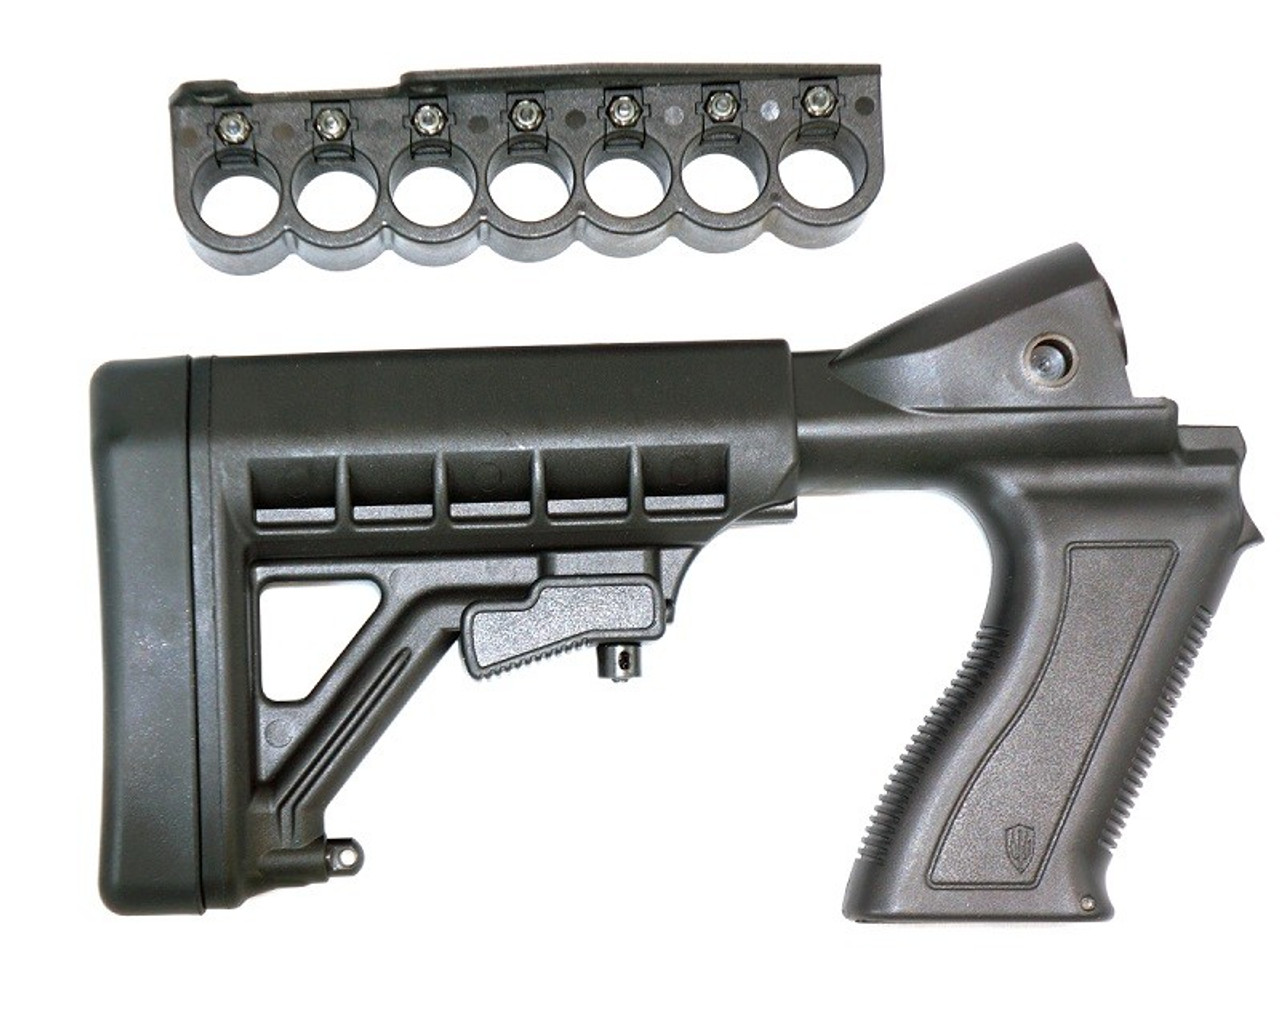 Archangel® 12 Gauge Tactical Pistol Grip Stock for the Remington® Model 870™ includes 6 Position Adjustable Buttstock with Recoil Pad and (7) Rd Shell Carrier - Black Polymer